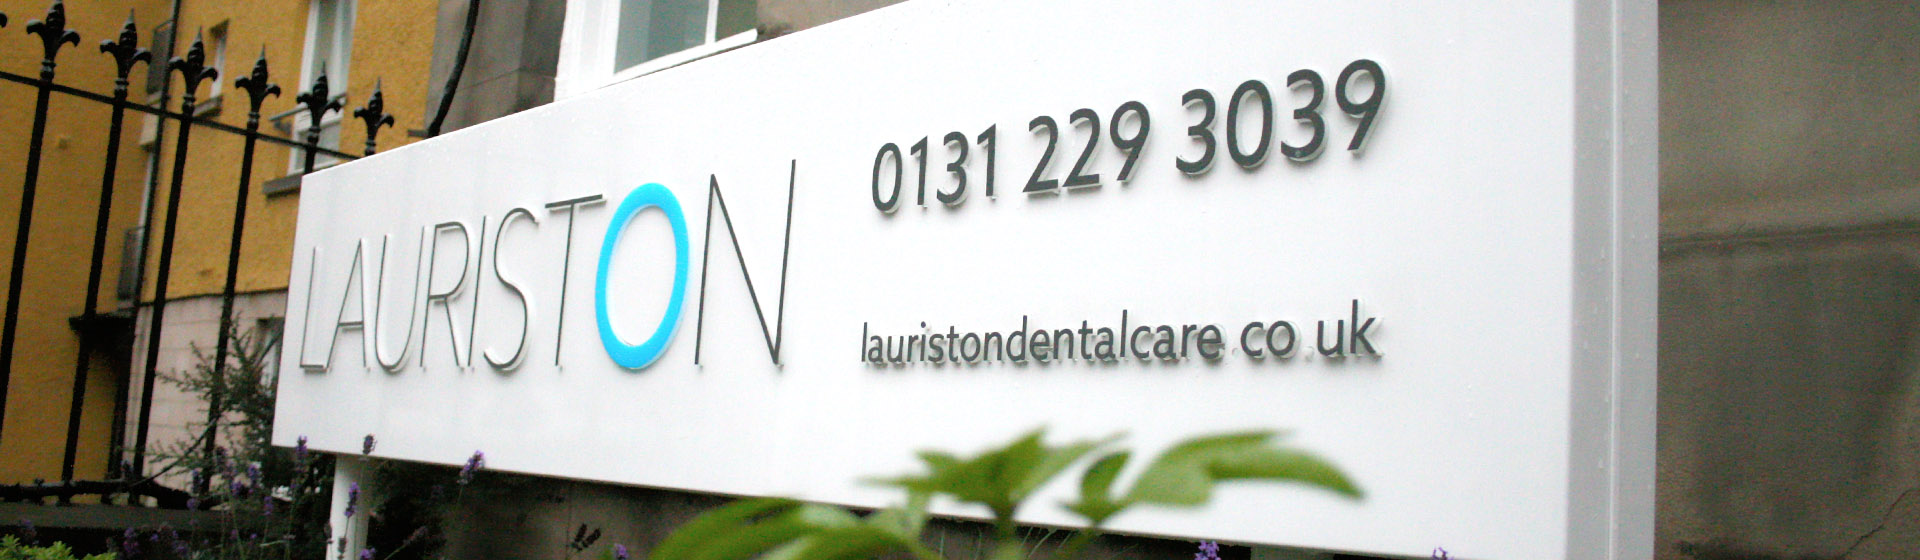 lauriston-dental-care-sign-front